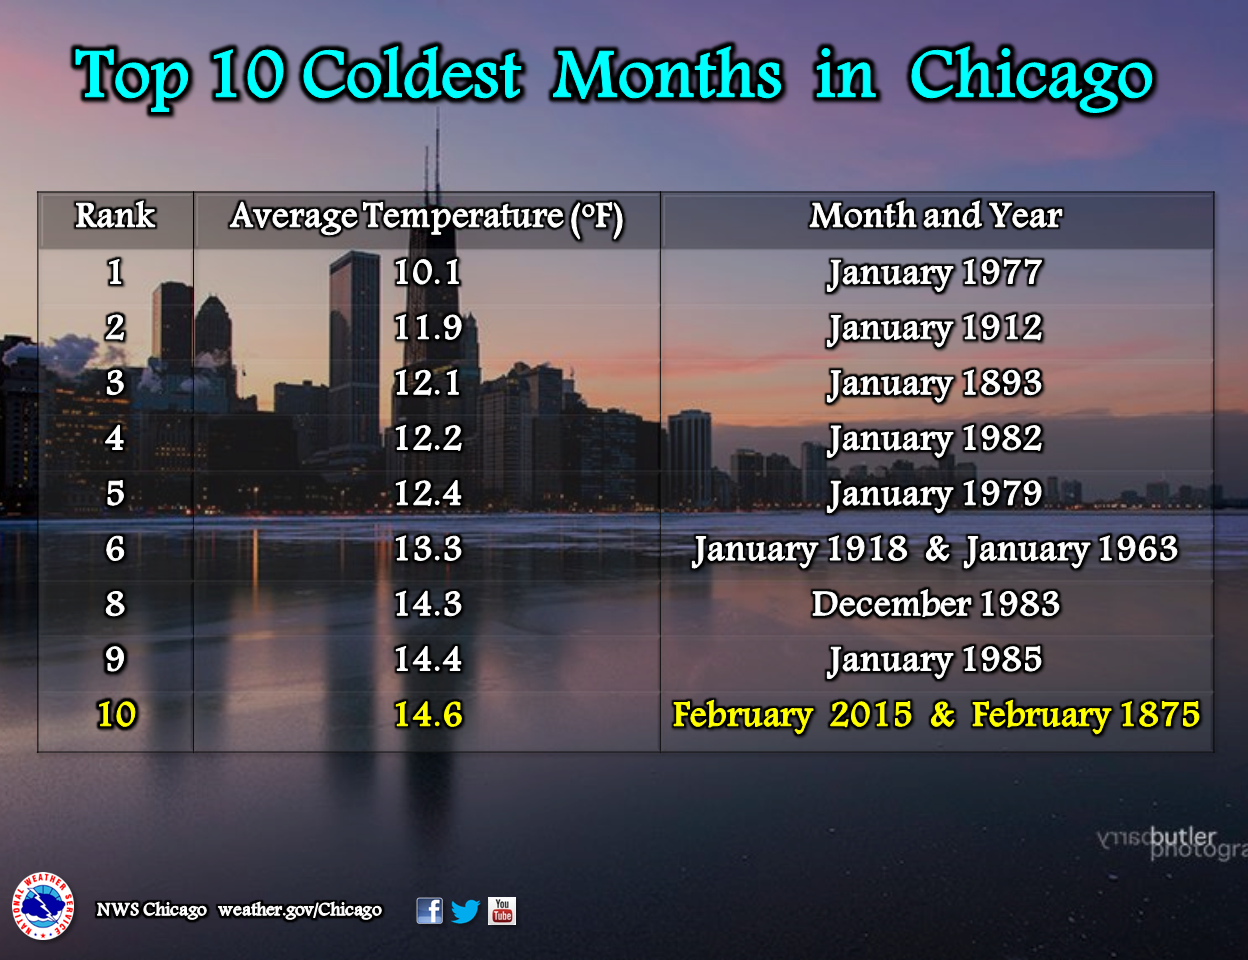 Top 10 Coldest Months in Chicago